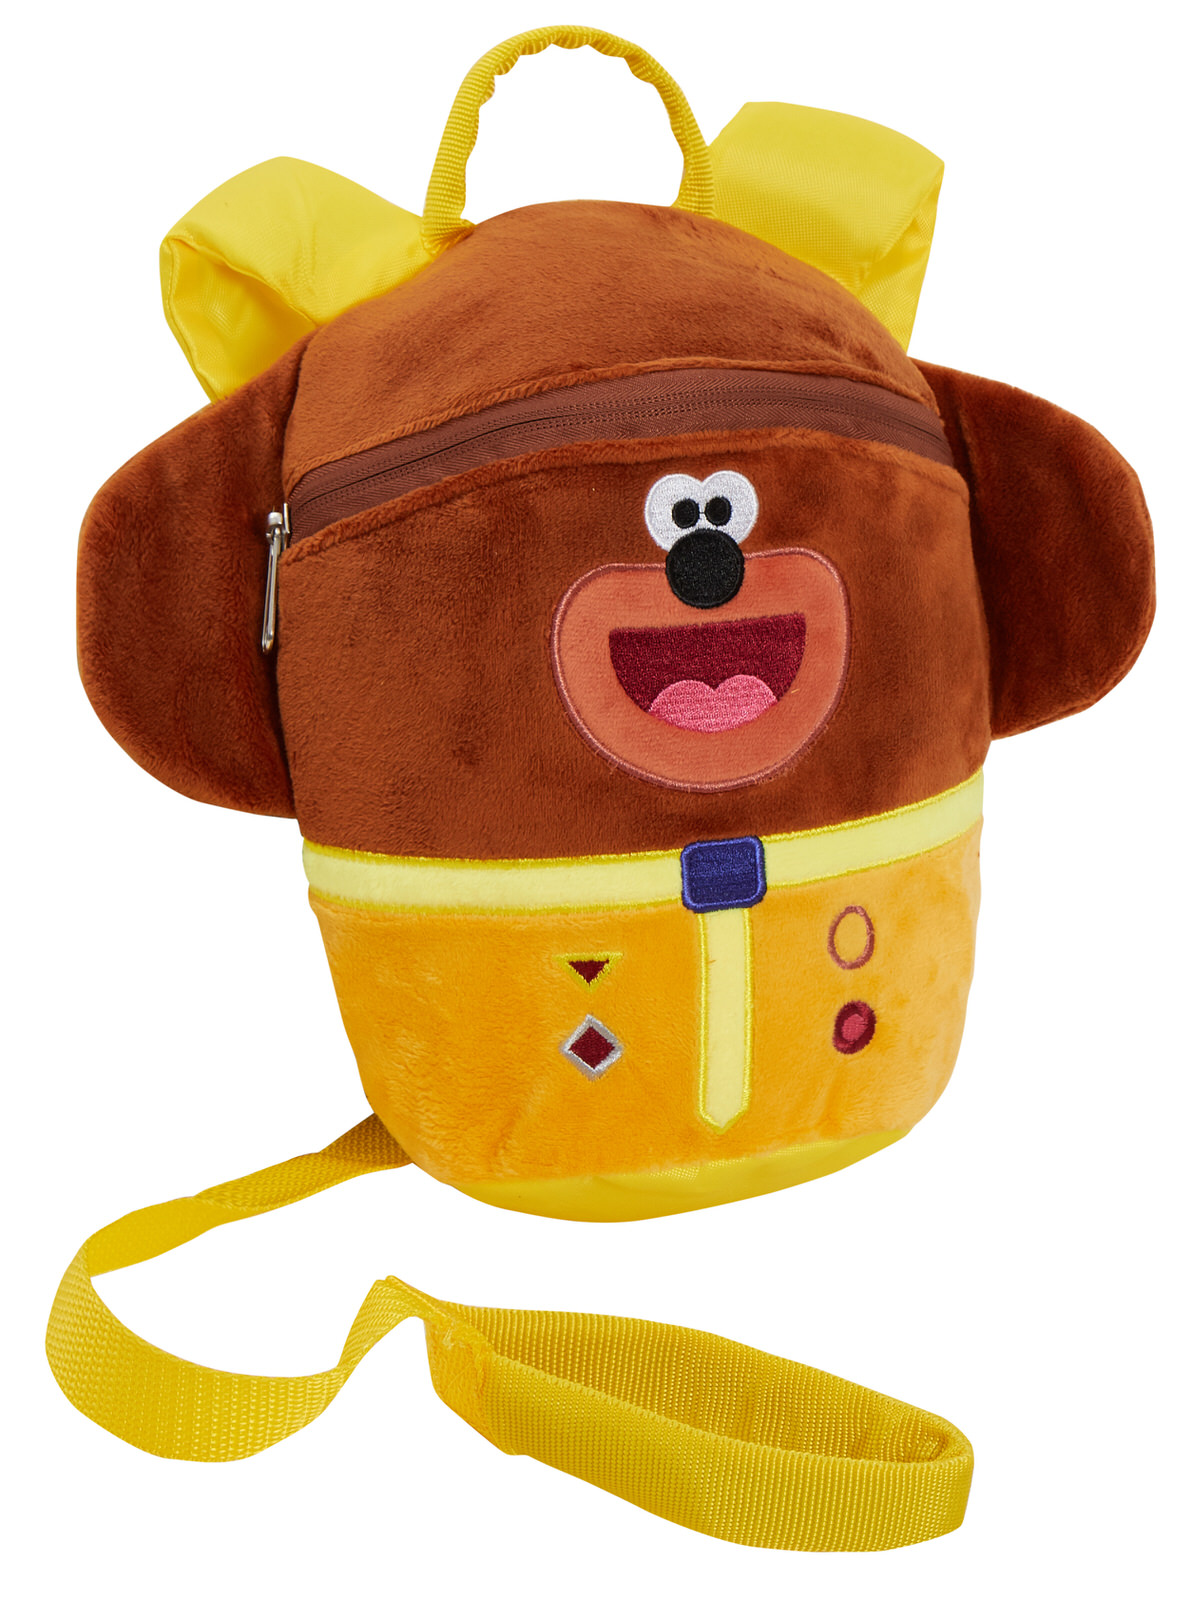 Plush-Hey-Duggee-Backpack-With-Reins-Kids-Detachable-Safety-Harness-Nursery-Bag thumbnail 7